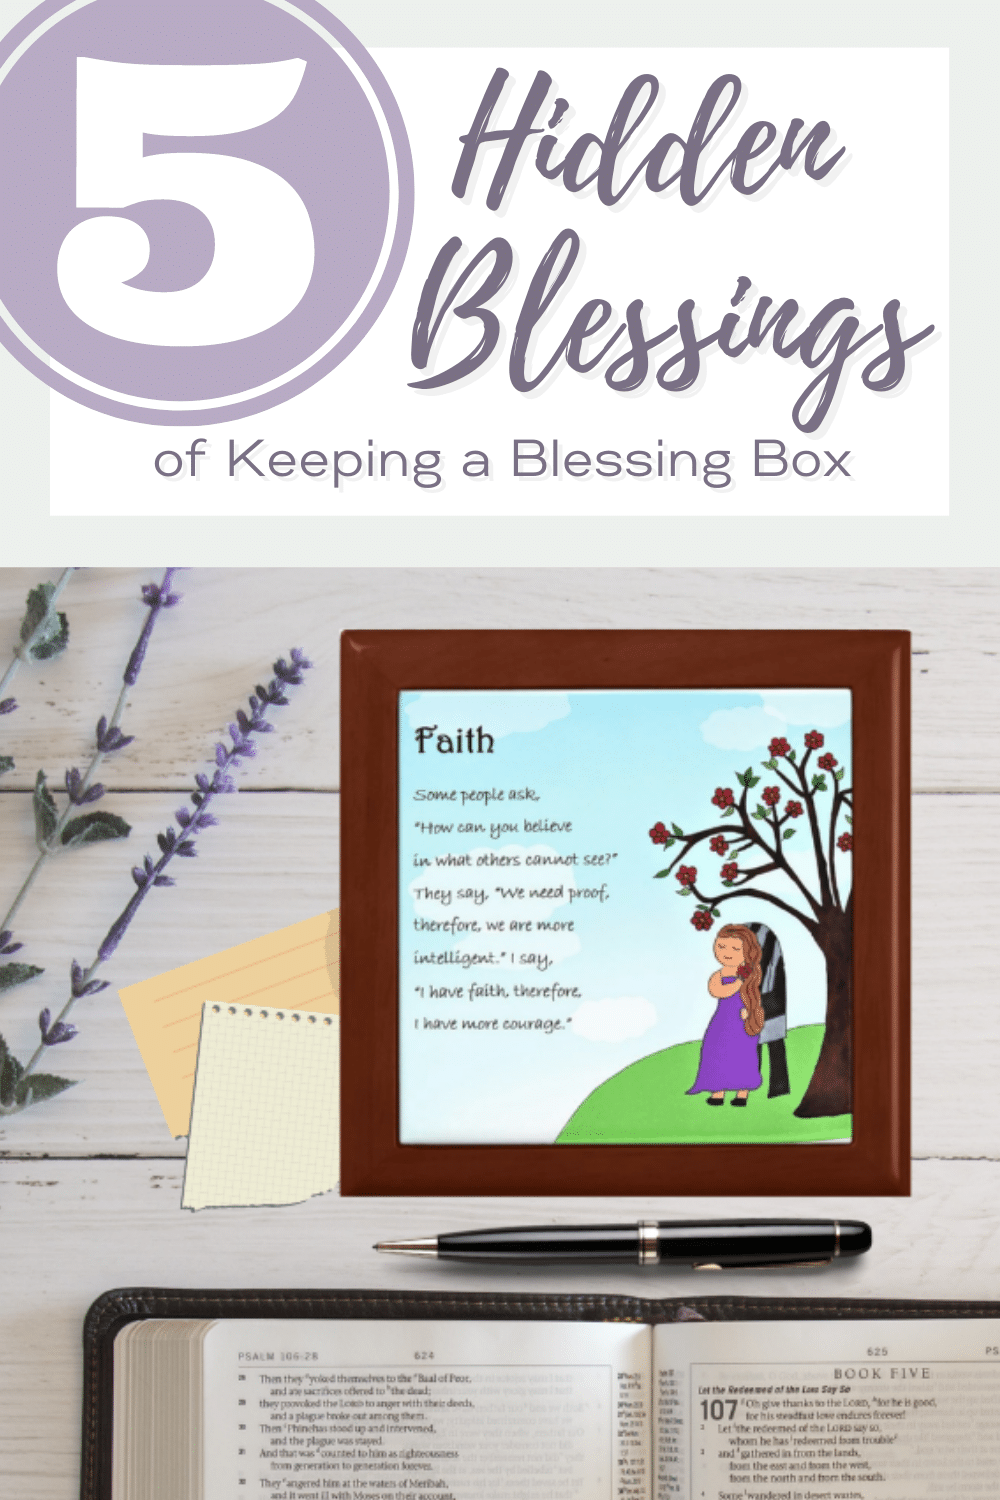 5 Hidden Blessings of Keeping a Blessing Box